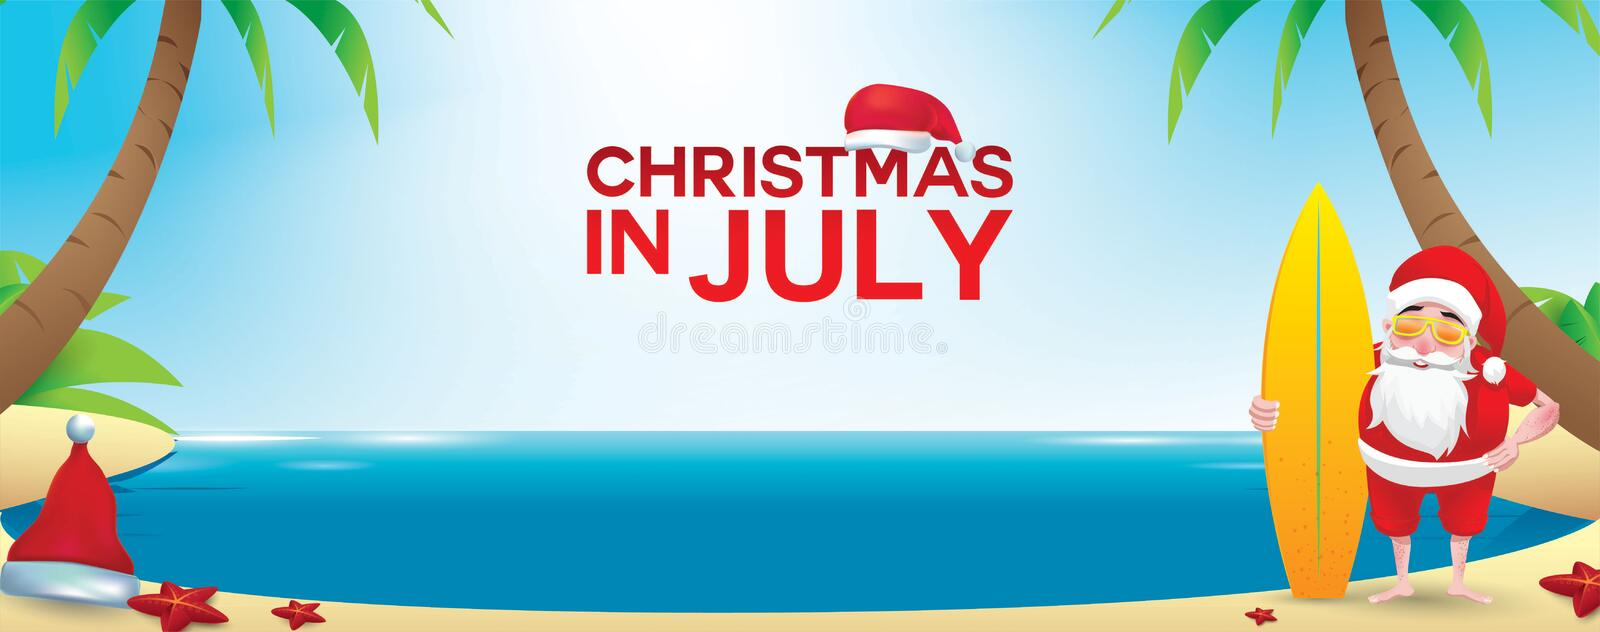 Christmas In July Royalty Free Images.Christmas July Stock Illustrations 4 276 Christmas July